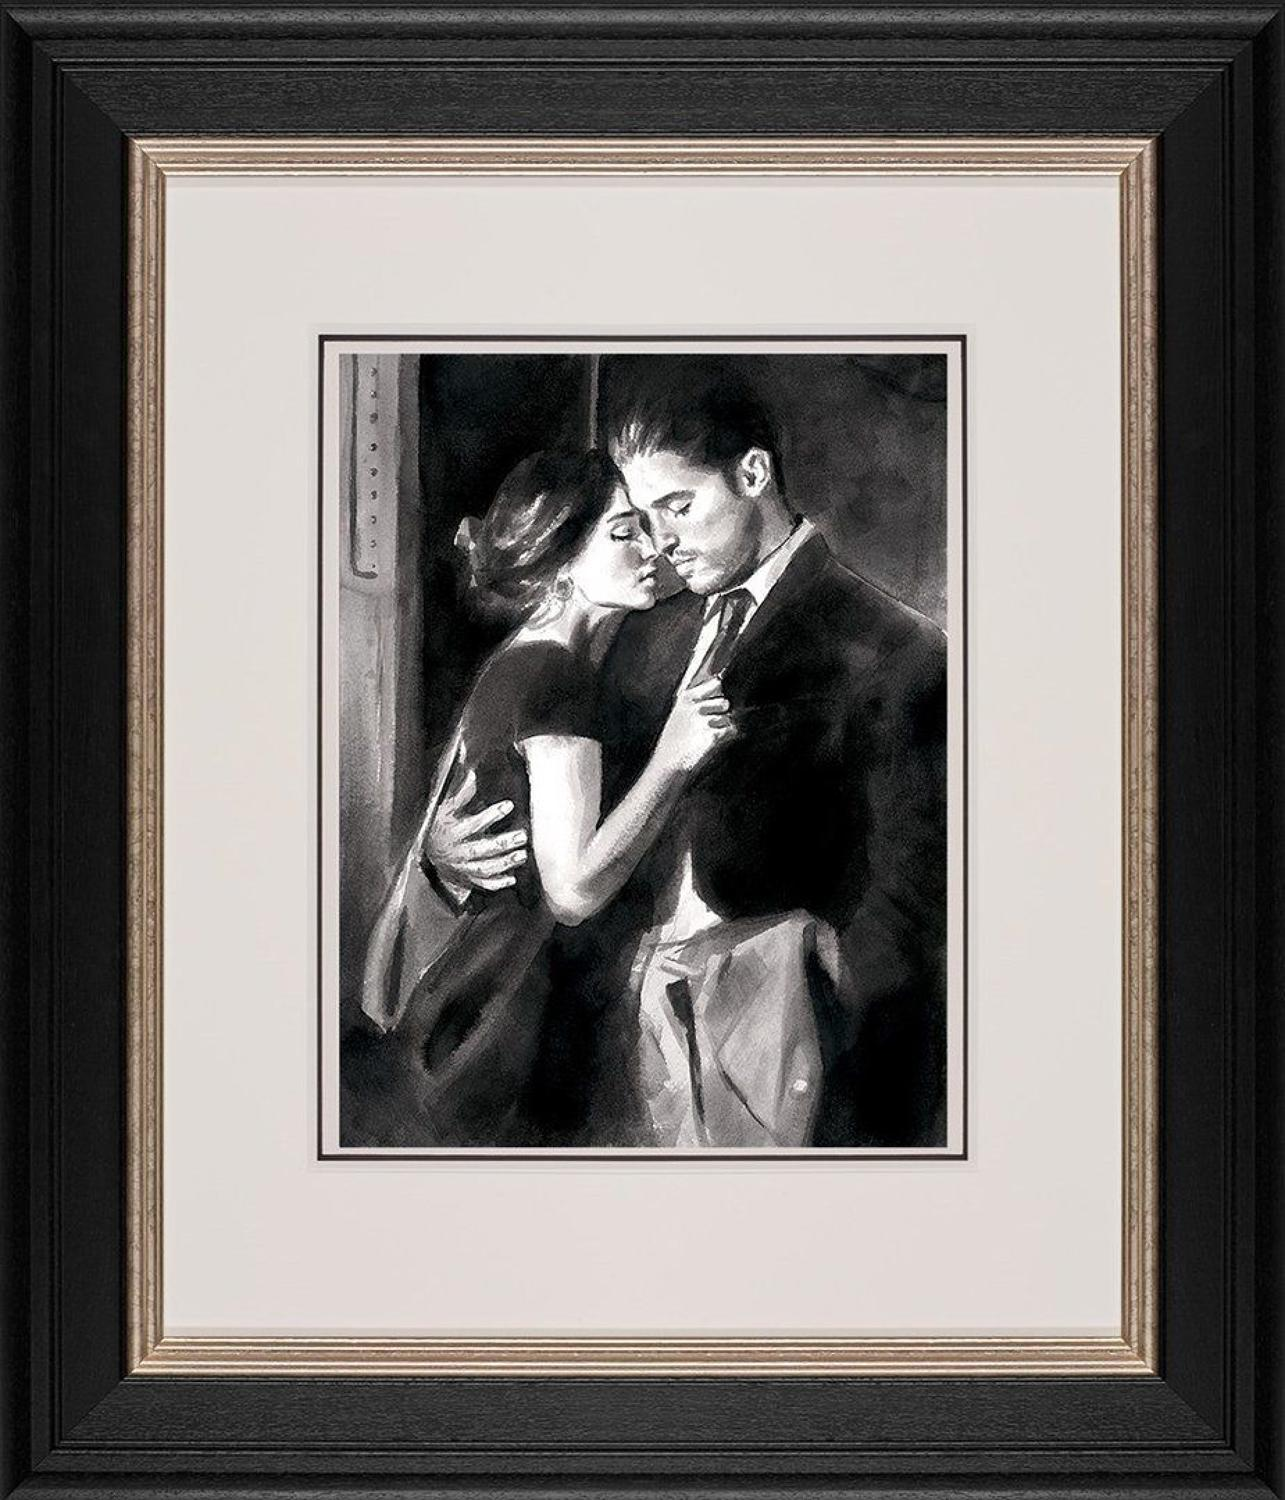 The Train Station V By Fabian Perez Framed Art